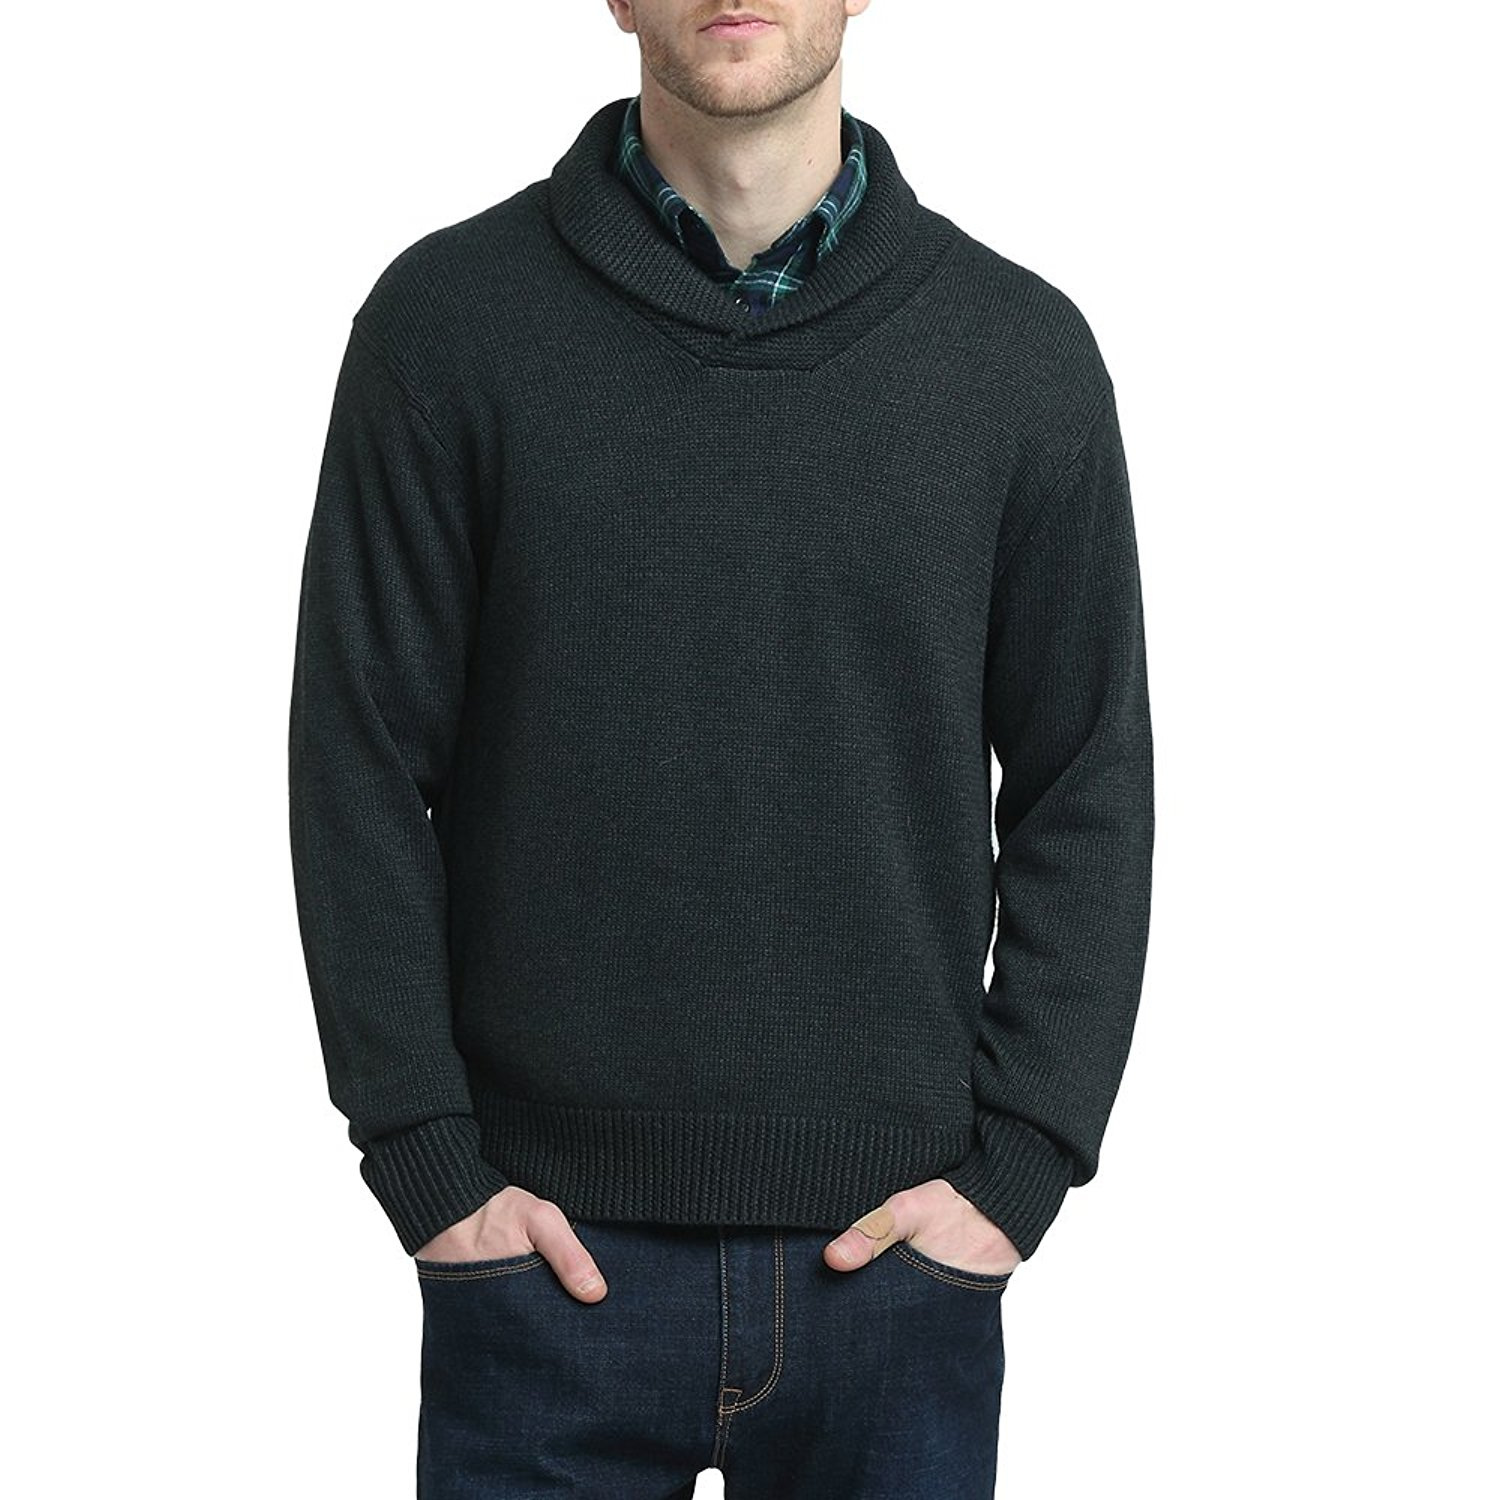 Kallspin Mens Relaxed Fit Shawl Collar V Neck Sweater Merino Wool Blend Thick and Solid